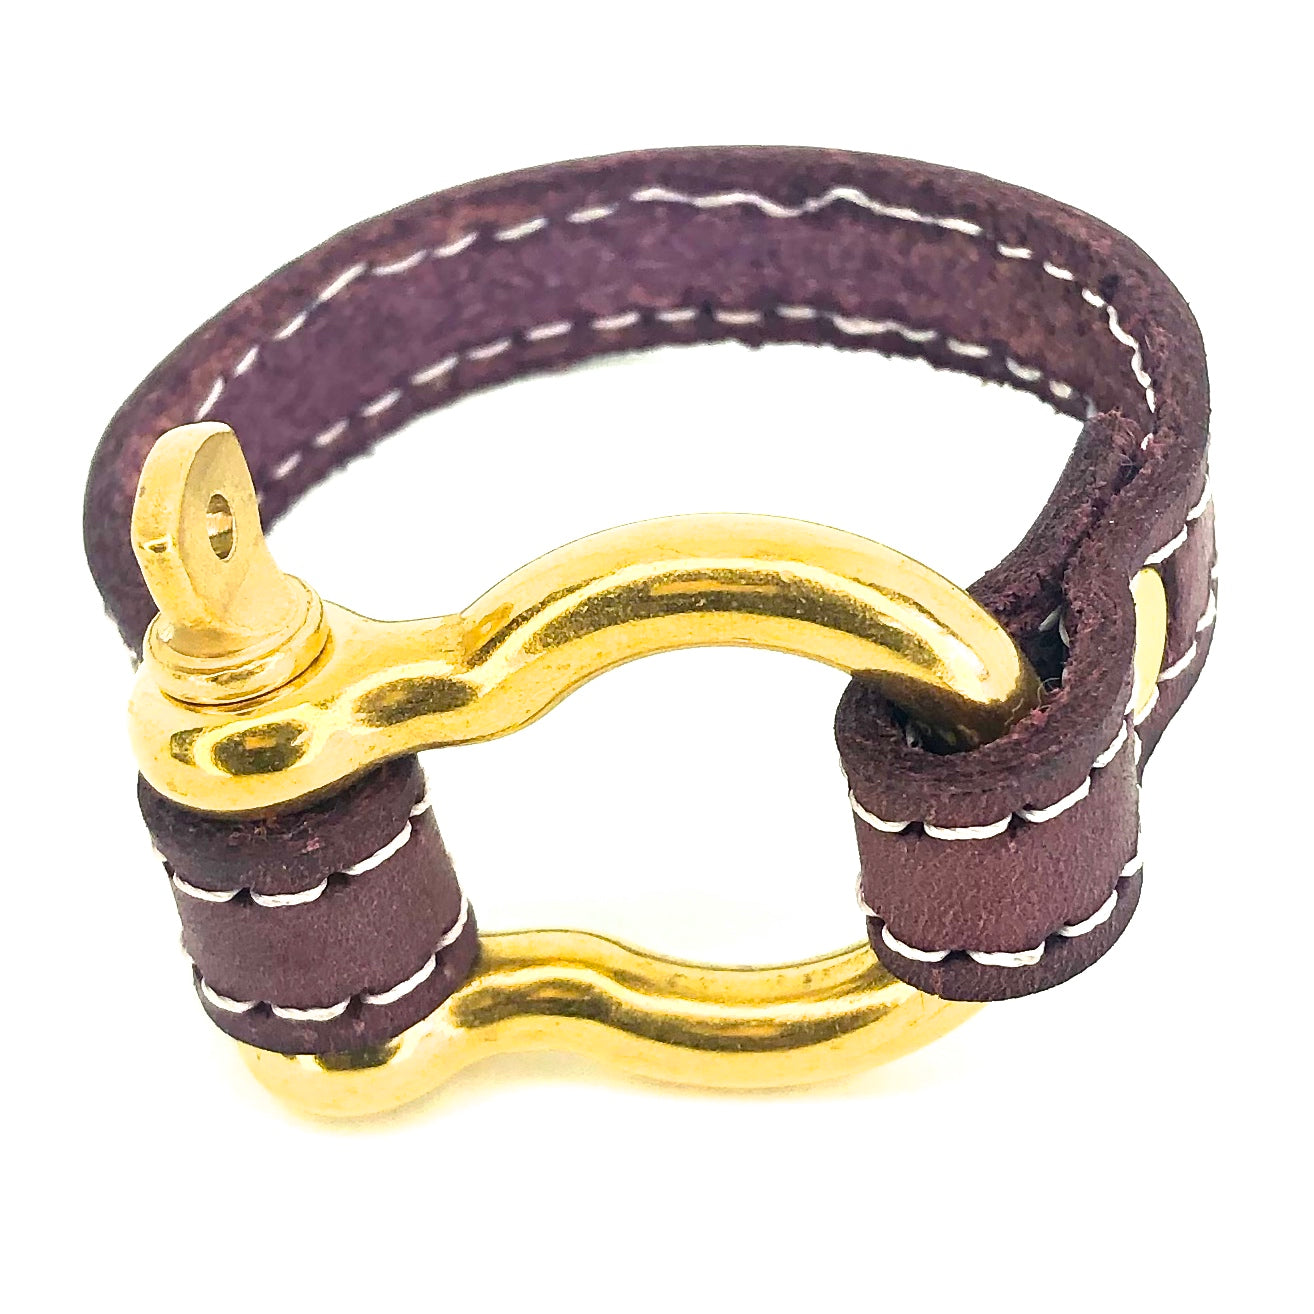 Nyet jewelry Signature Gold Bracelet Purple by nyet jewelry